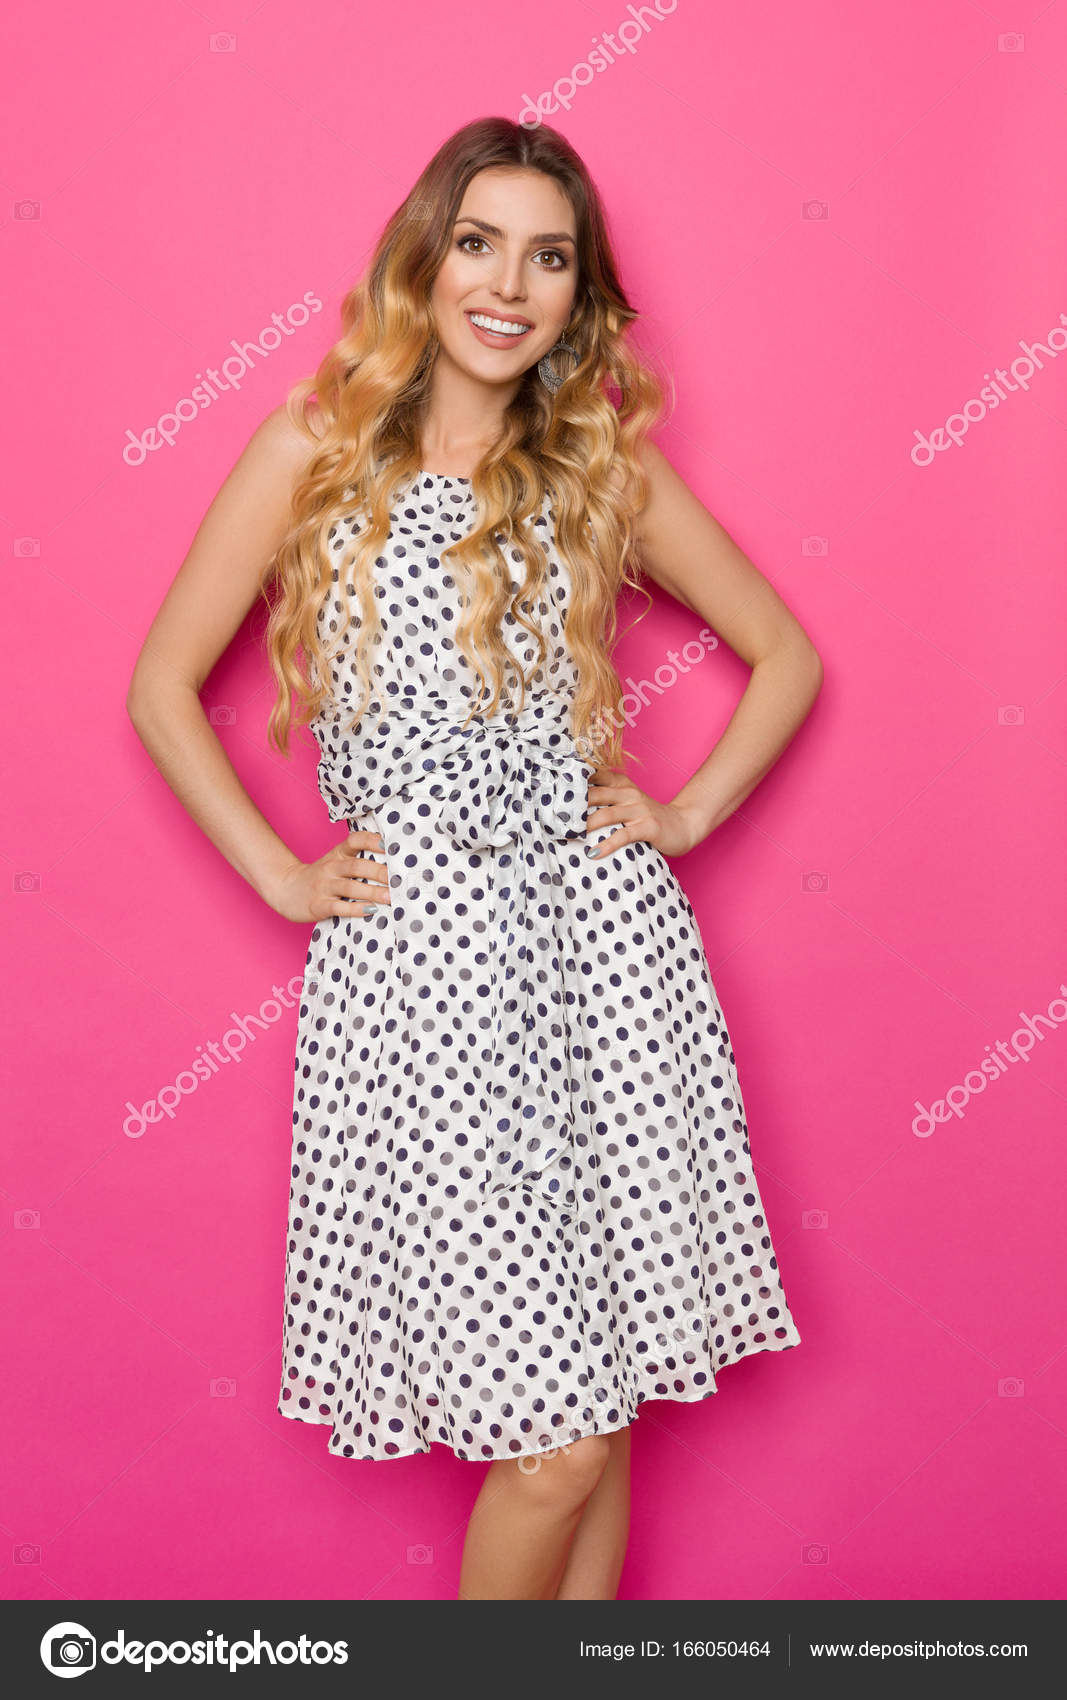 e5bae0c85a97 Beautiful young woman in white dotted summer dress is holding hands on hip